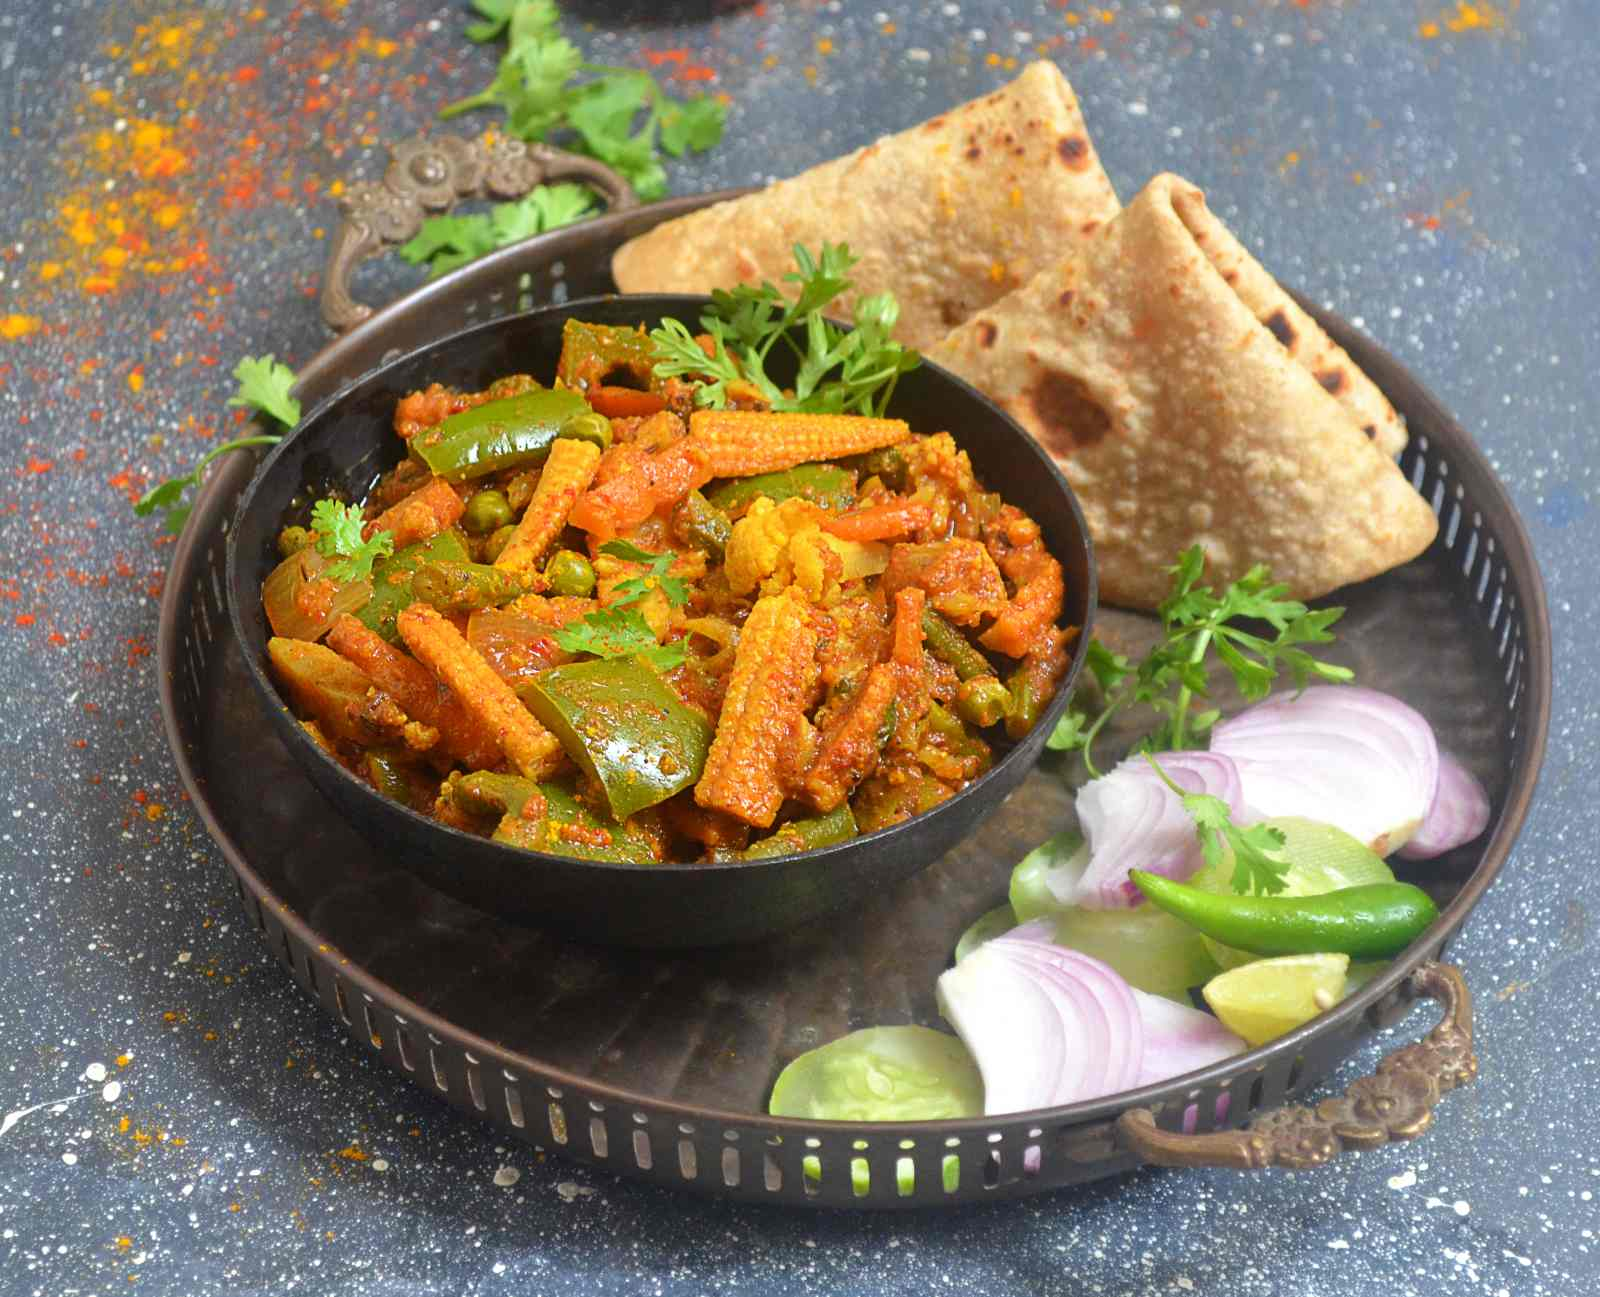 Punjabi mixed vegetable kadai recipe by archanas kitchen forumfinder Choice Image